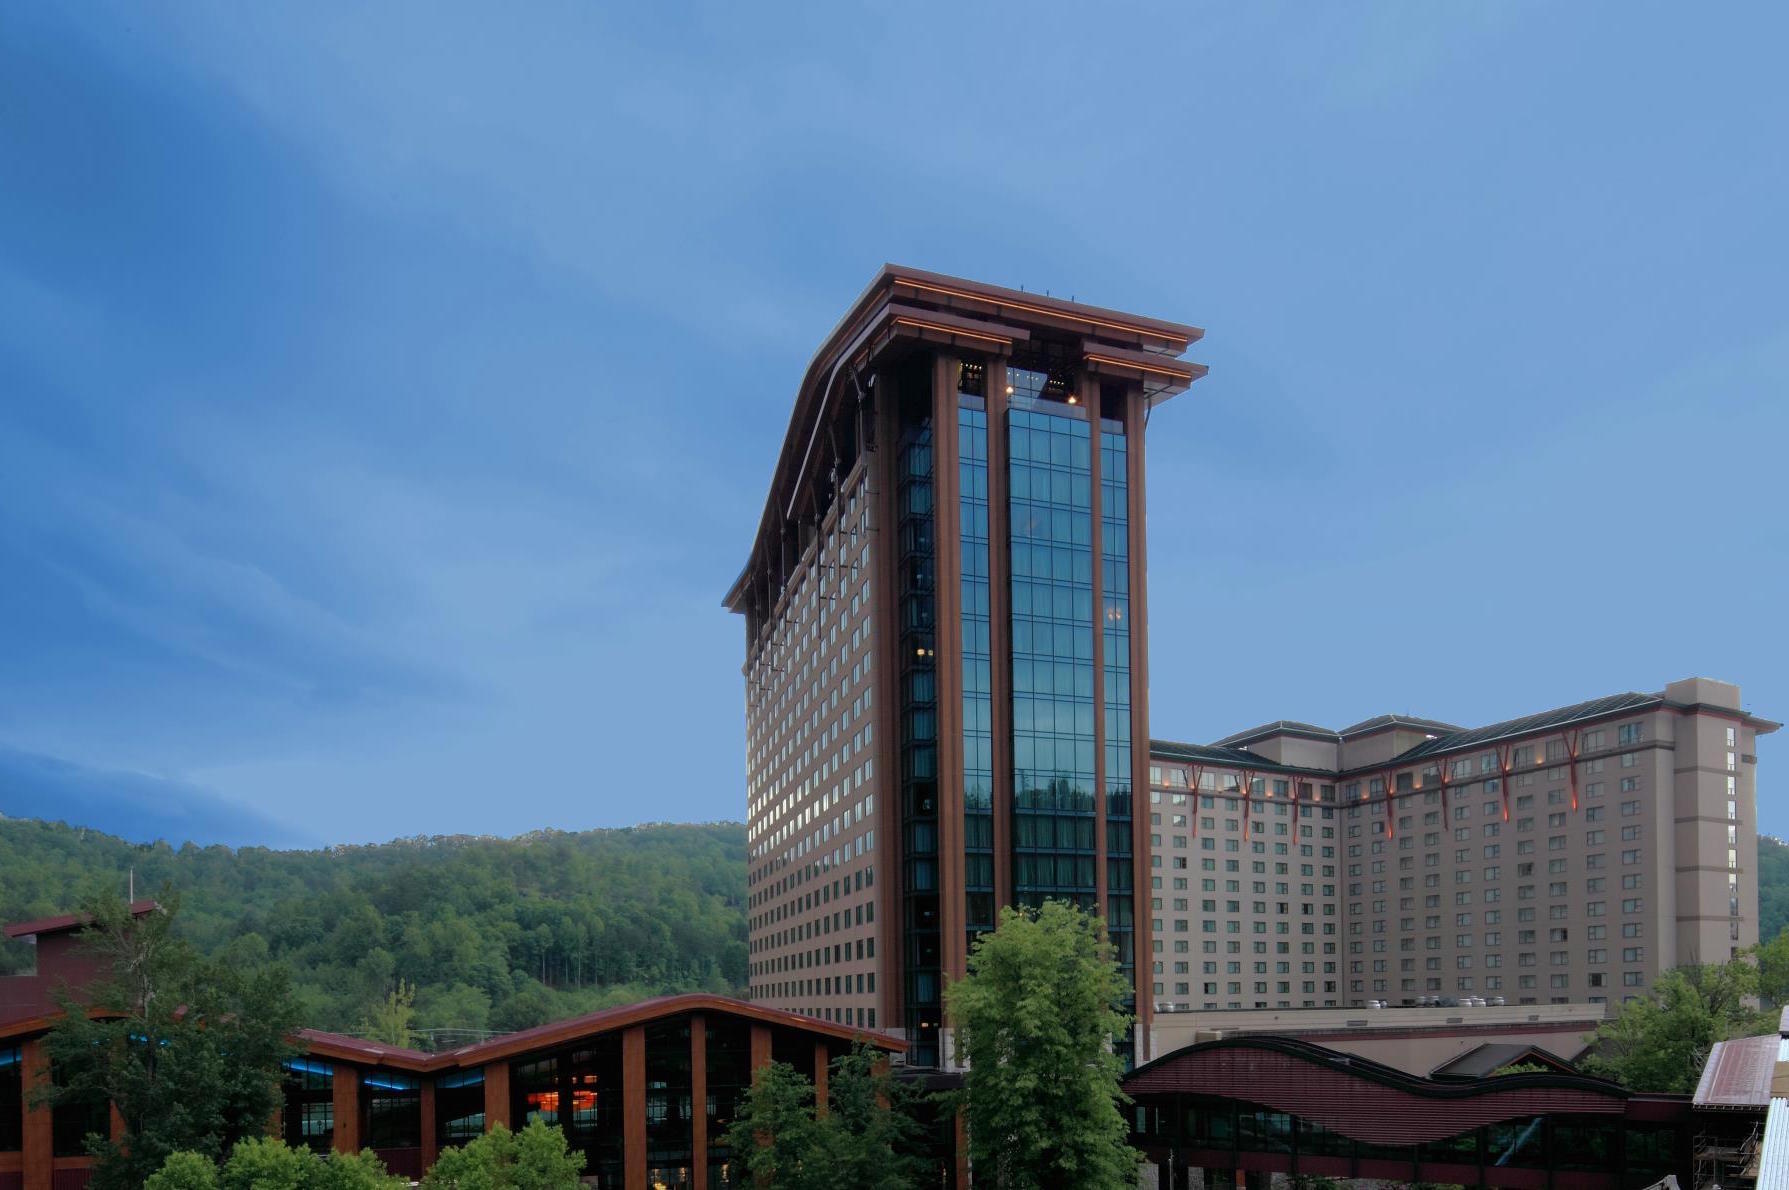 Eastern Cherokees schedule vote on liquor sales beyond casinos